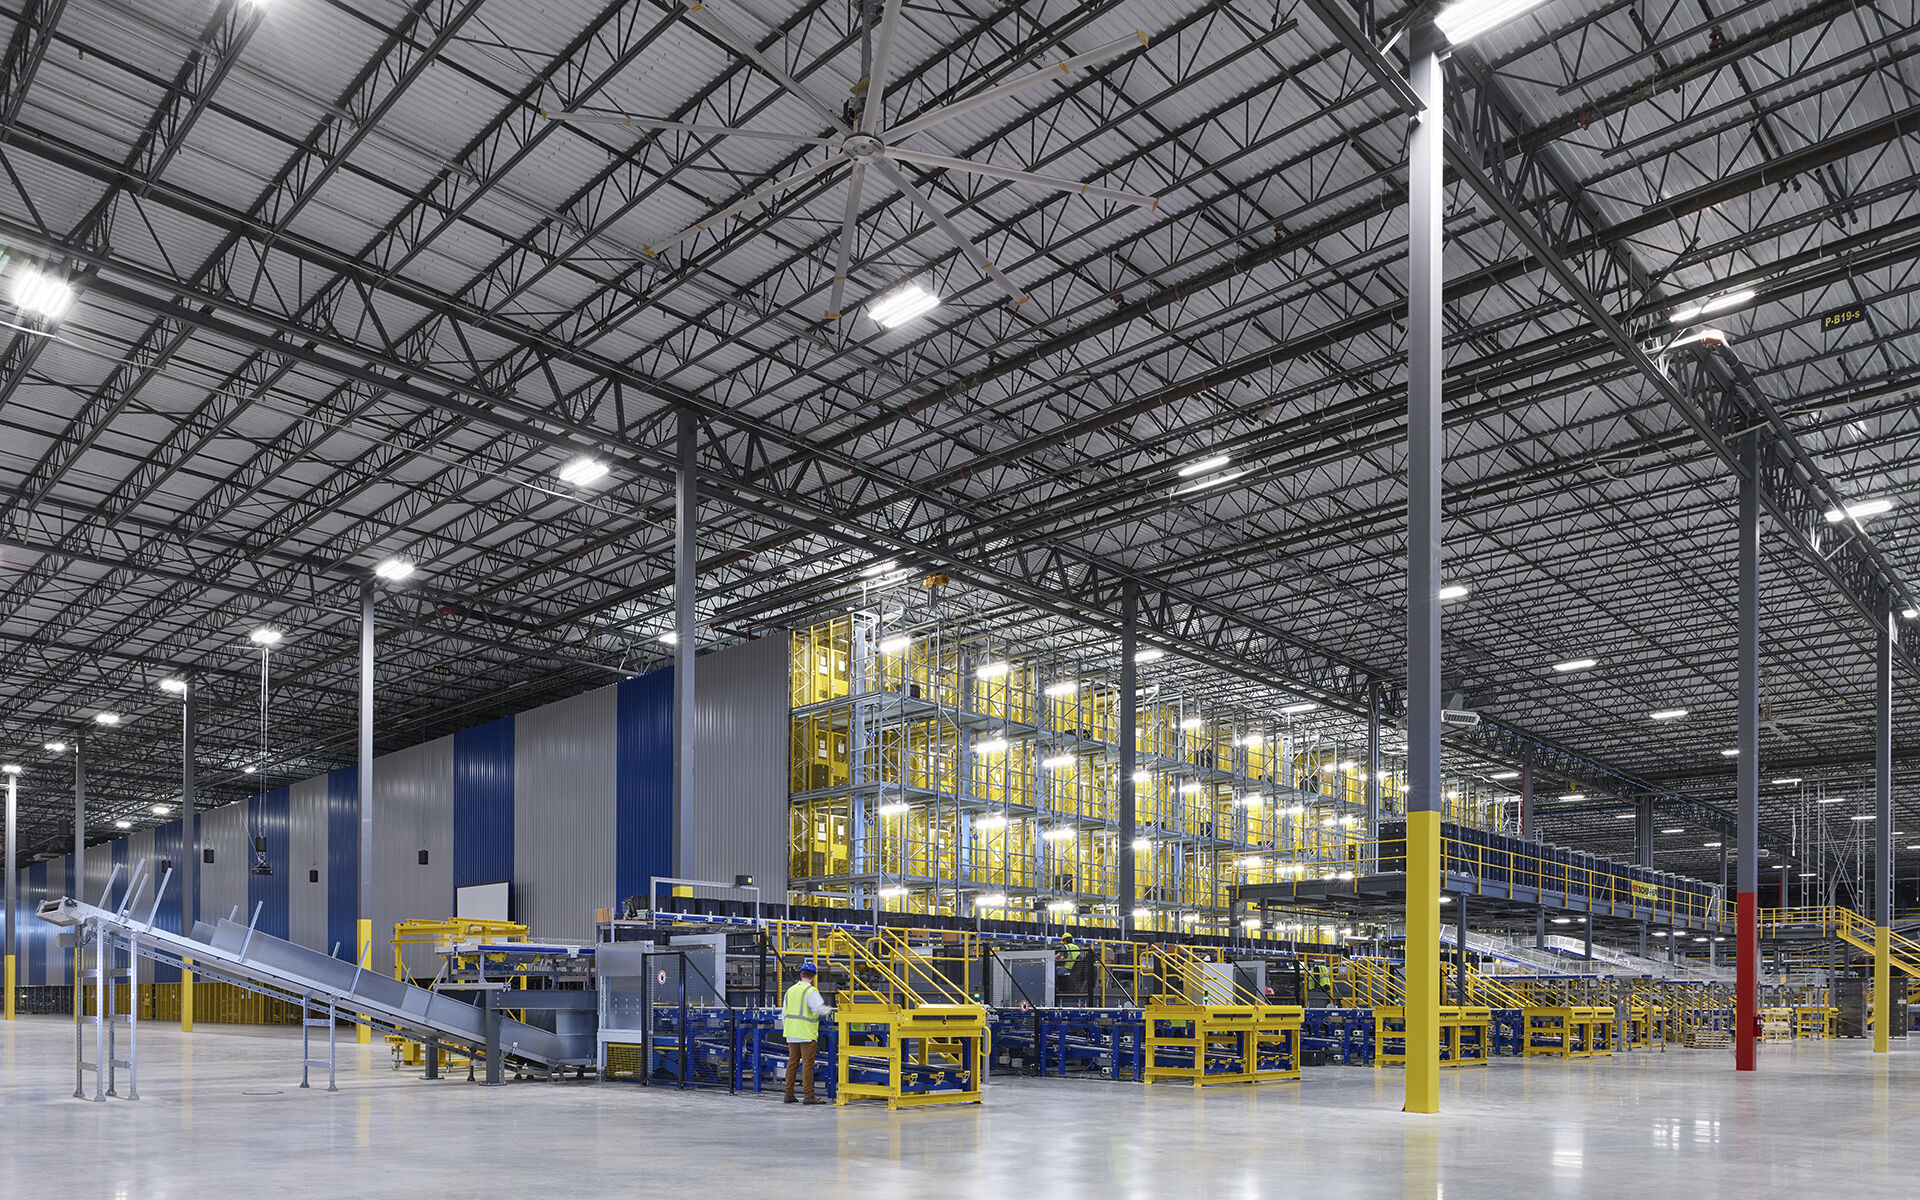 Lowe's e-Commerce Distribution Center